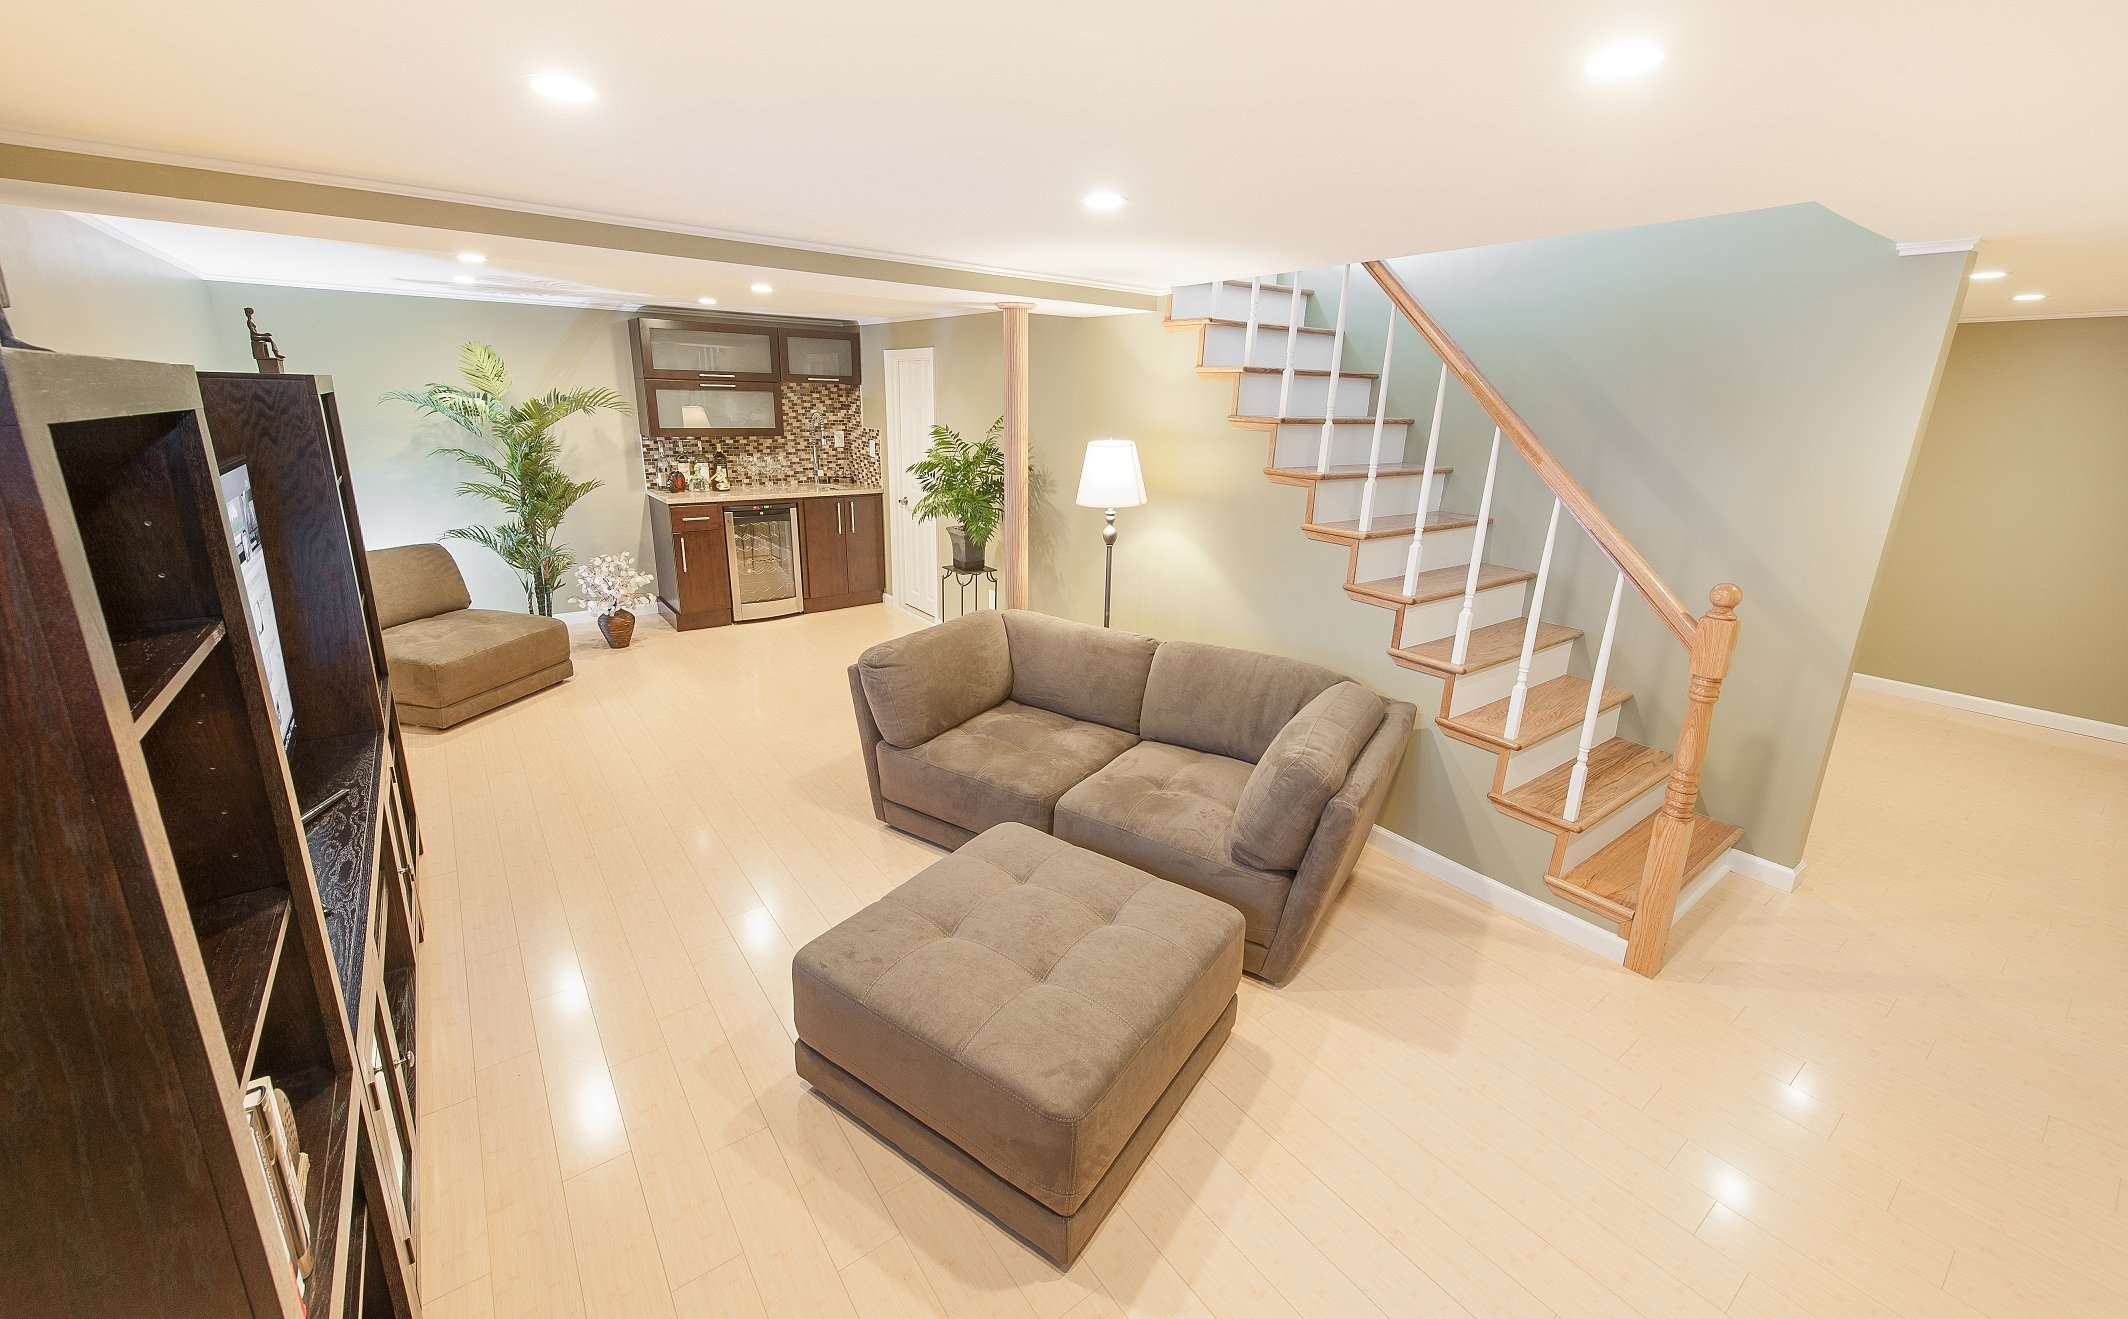 Basement flooring options choosing a basement floor for Basement flooring options